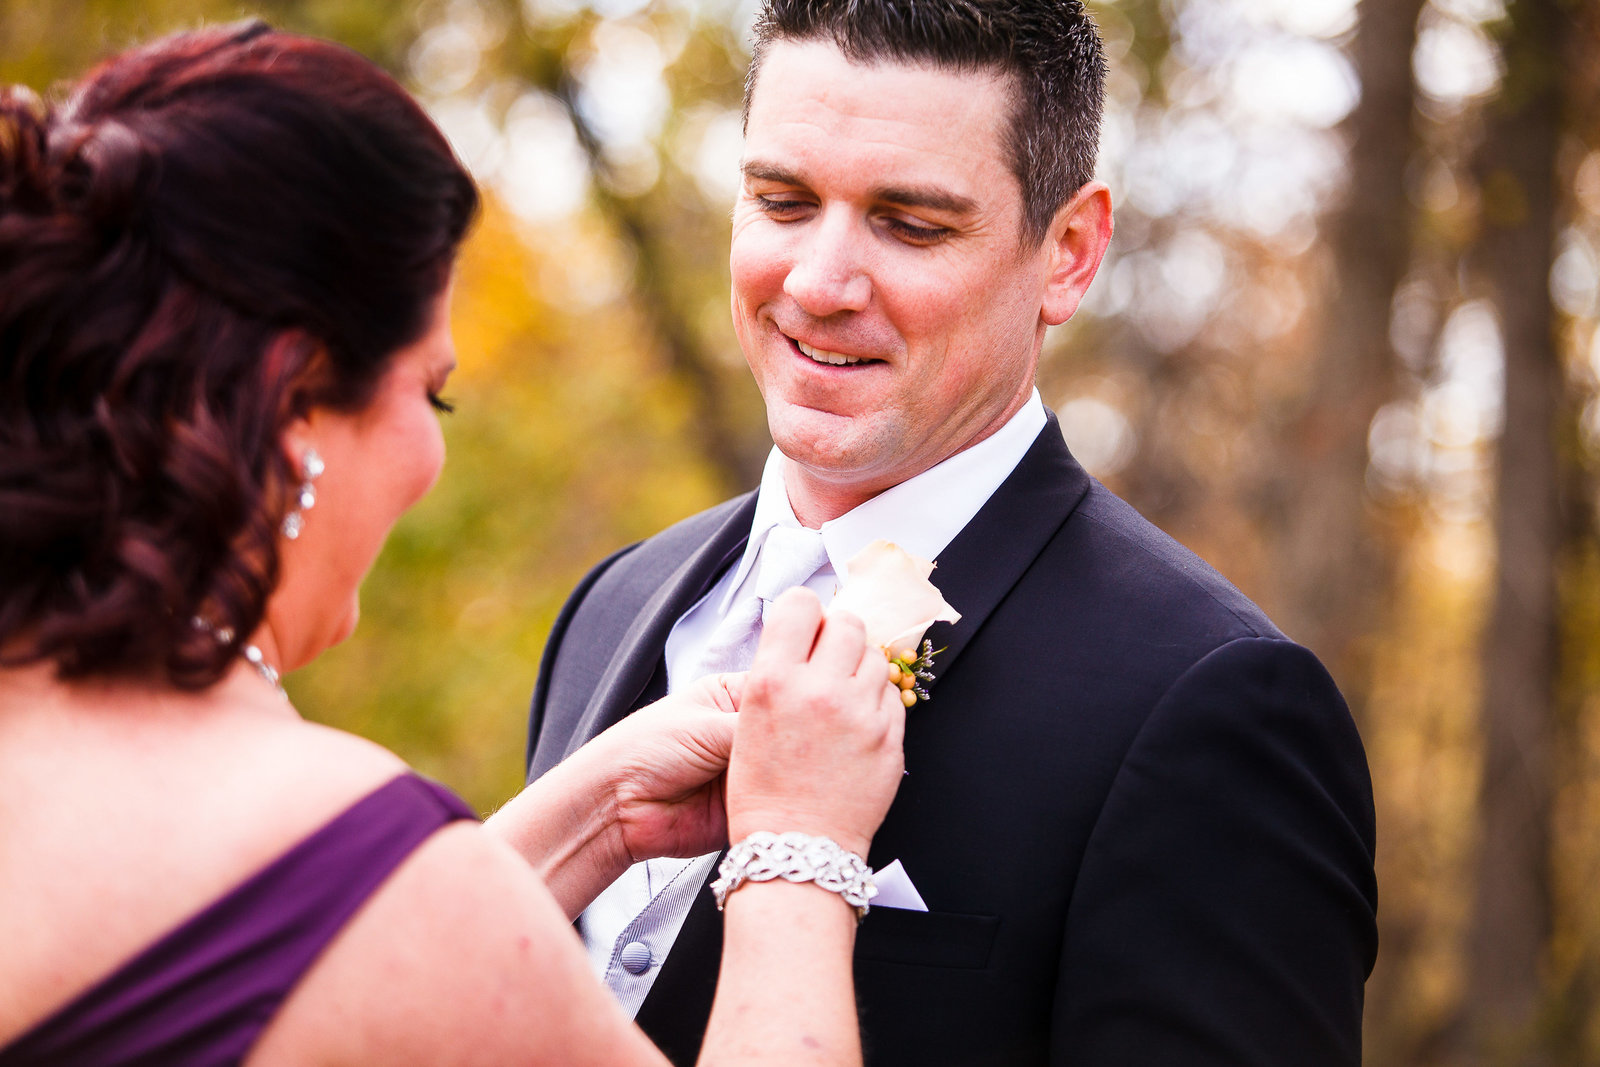 rachel-richard-photography-wedding-engagement-99